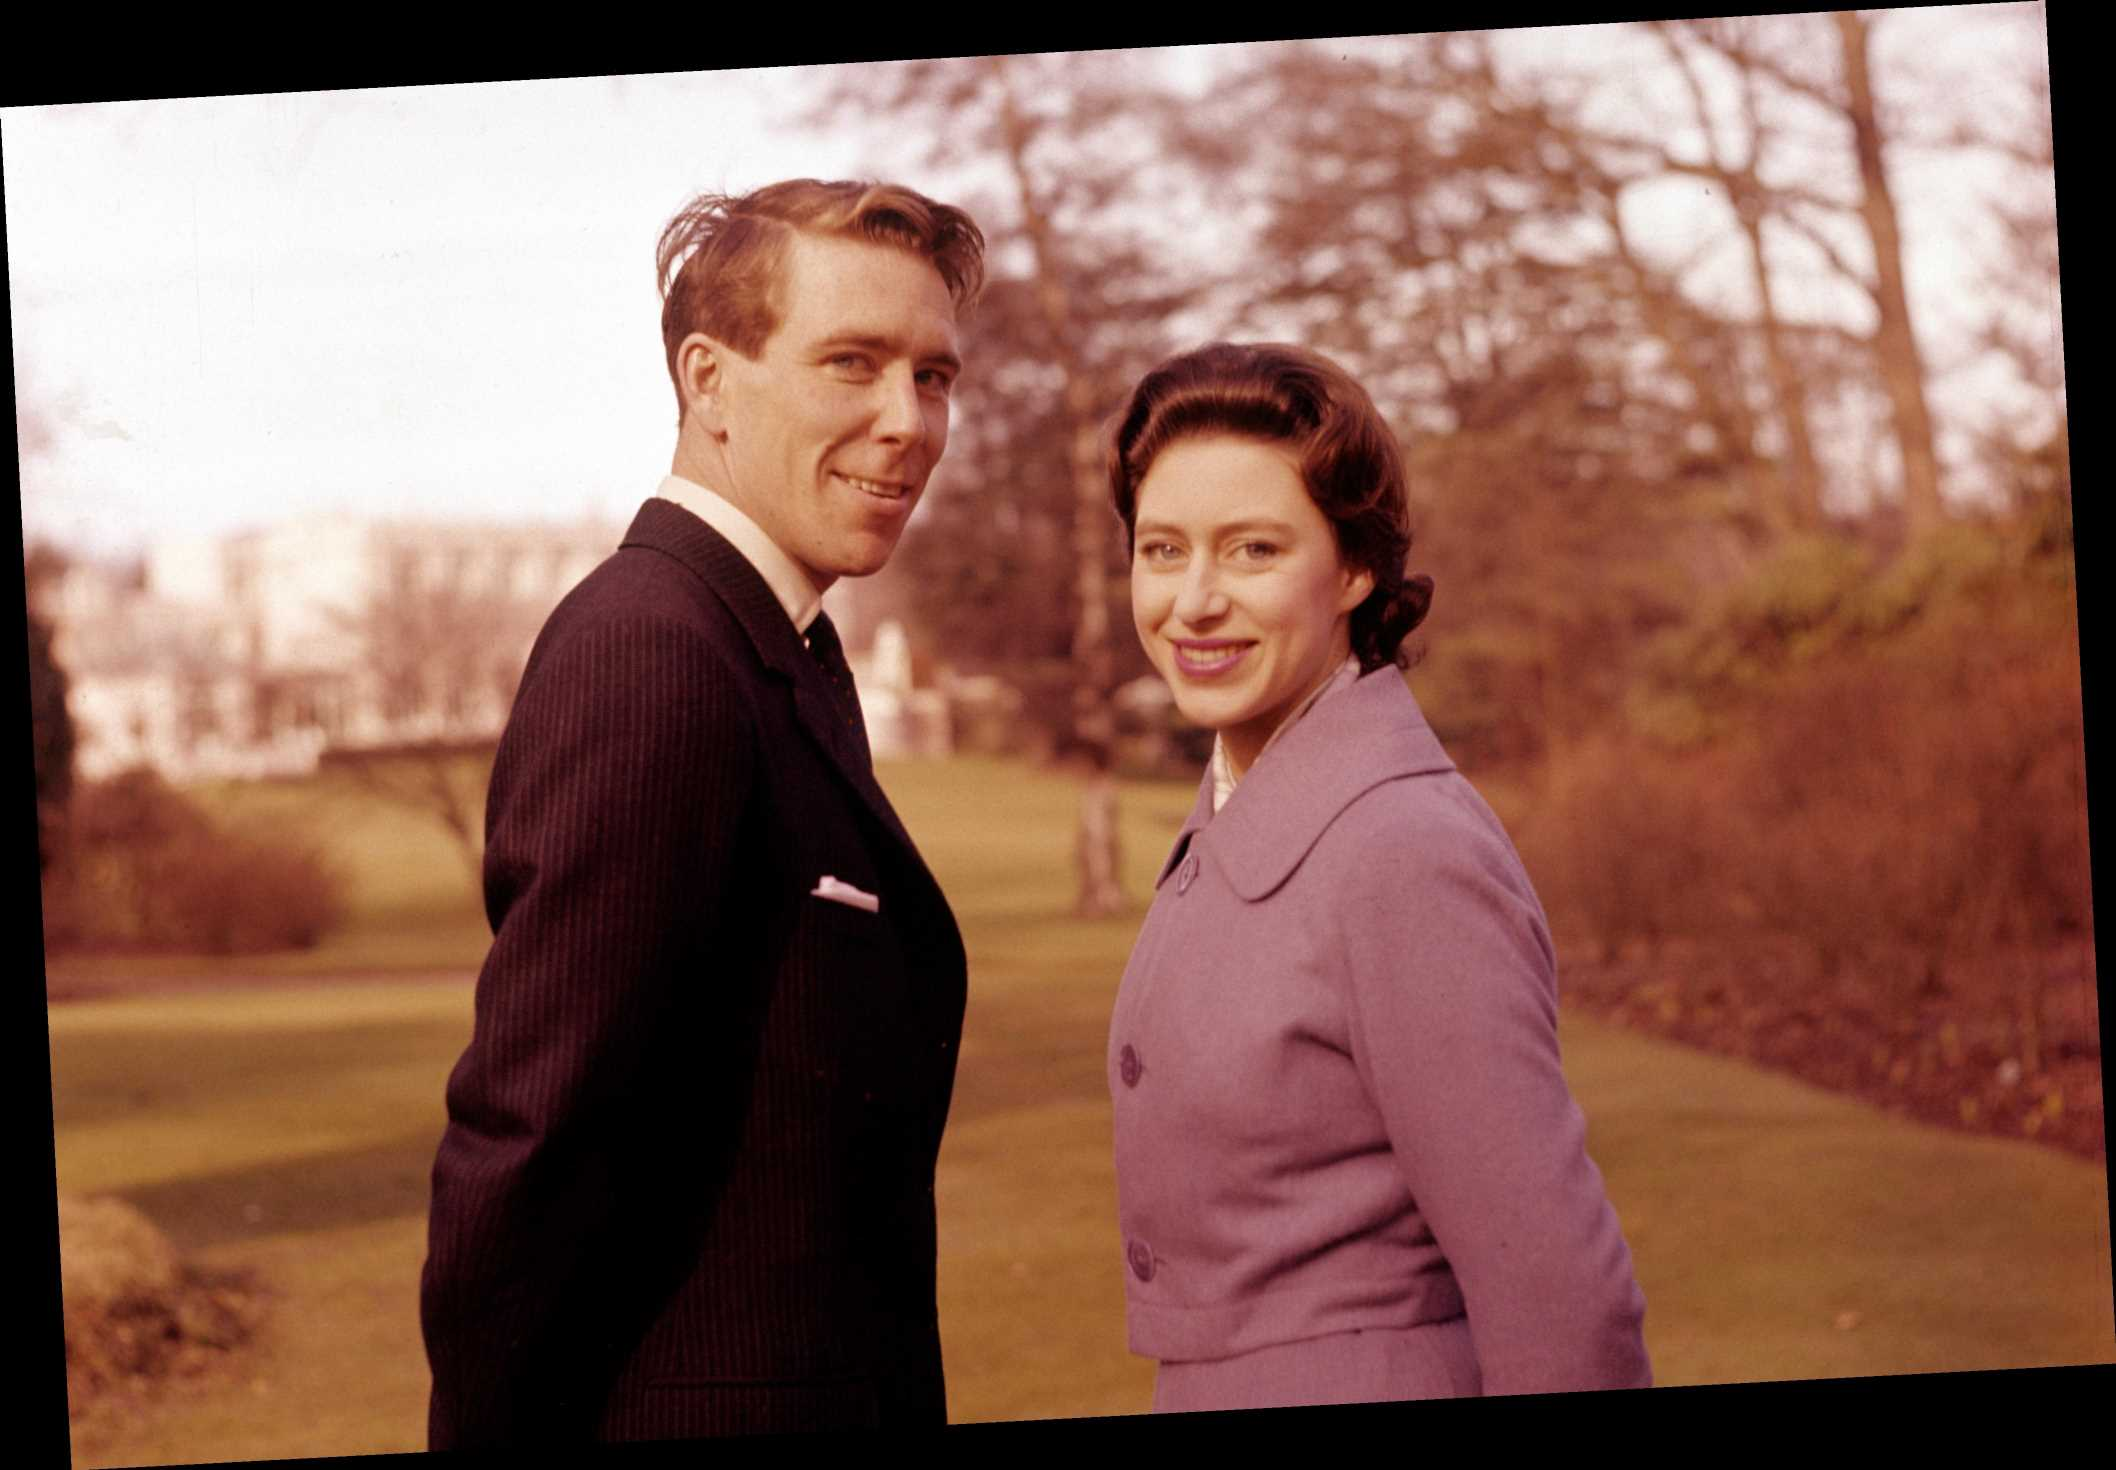 Communist spies tried to infiltrate the monarchy by targeting the Queen's brother-in-law